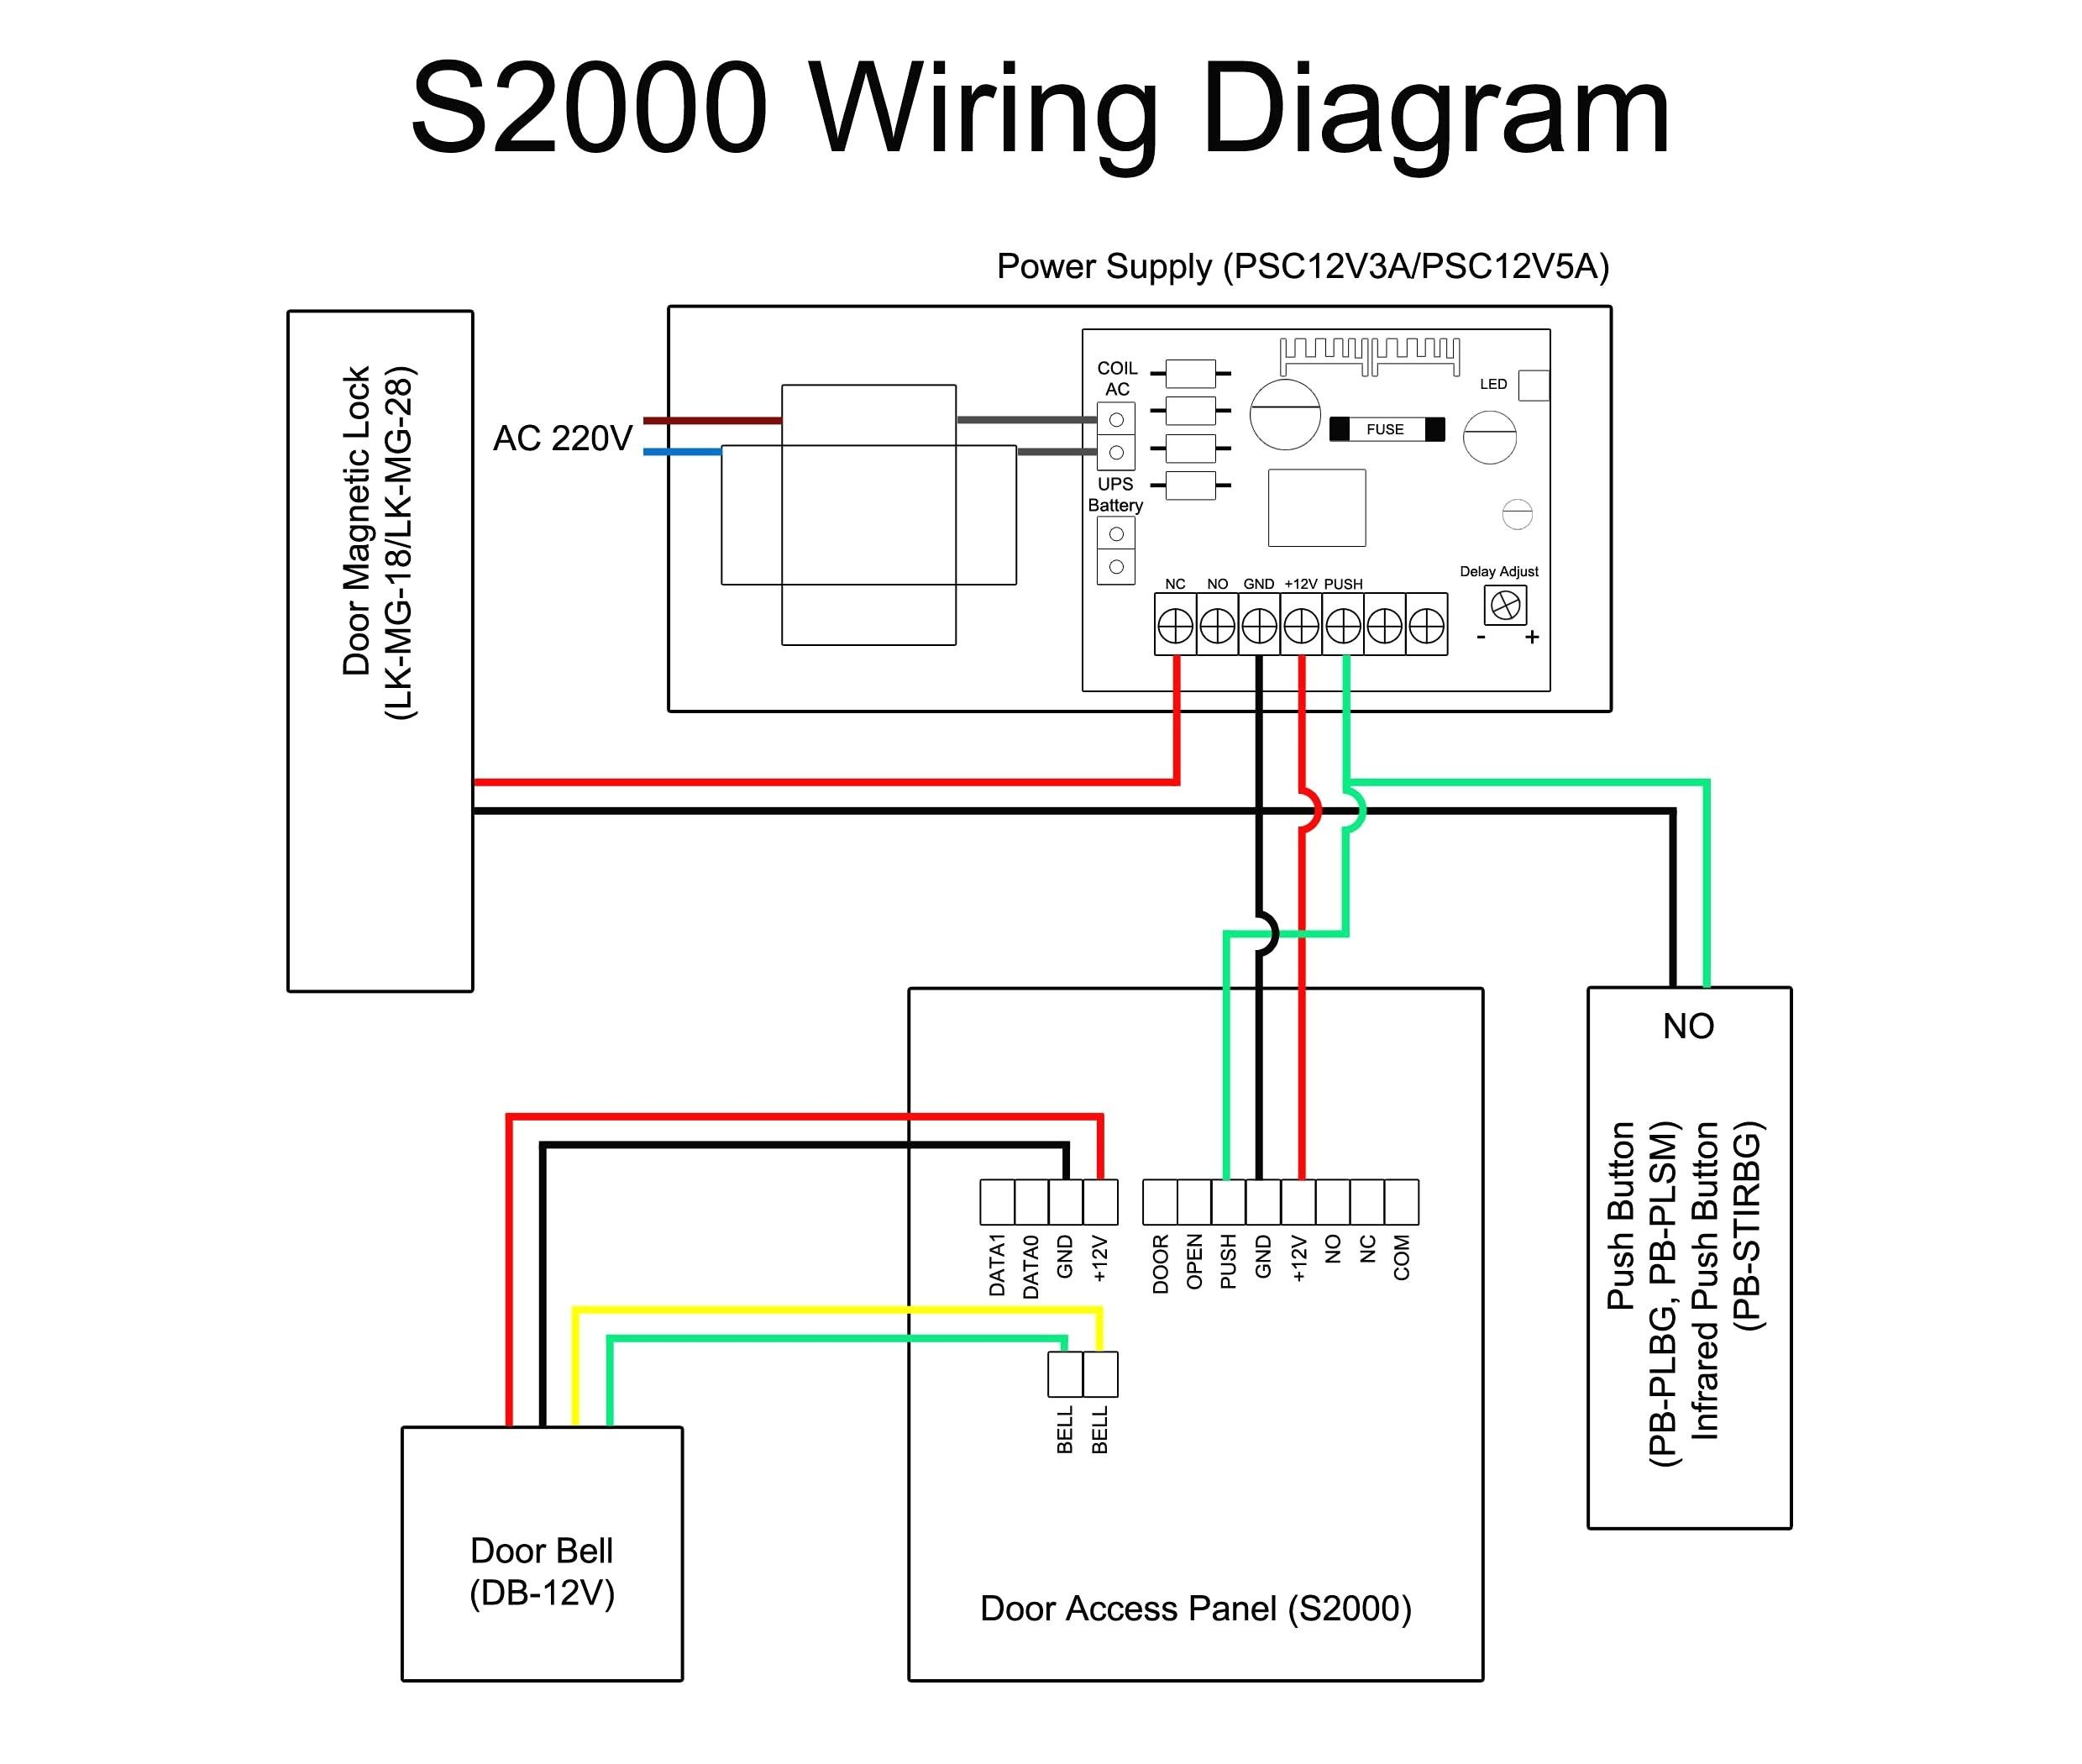 Awesome Wiring Diagram Of Door Access Control System Diagrams Digramssample Diagramimages Wiringdi Access Control System Access Control Home Theater Wiring